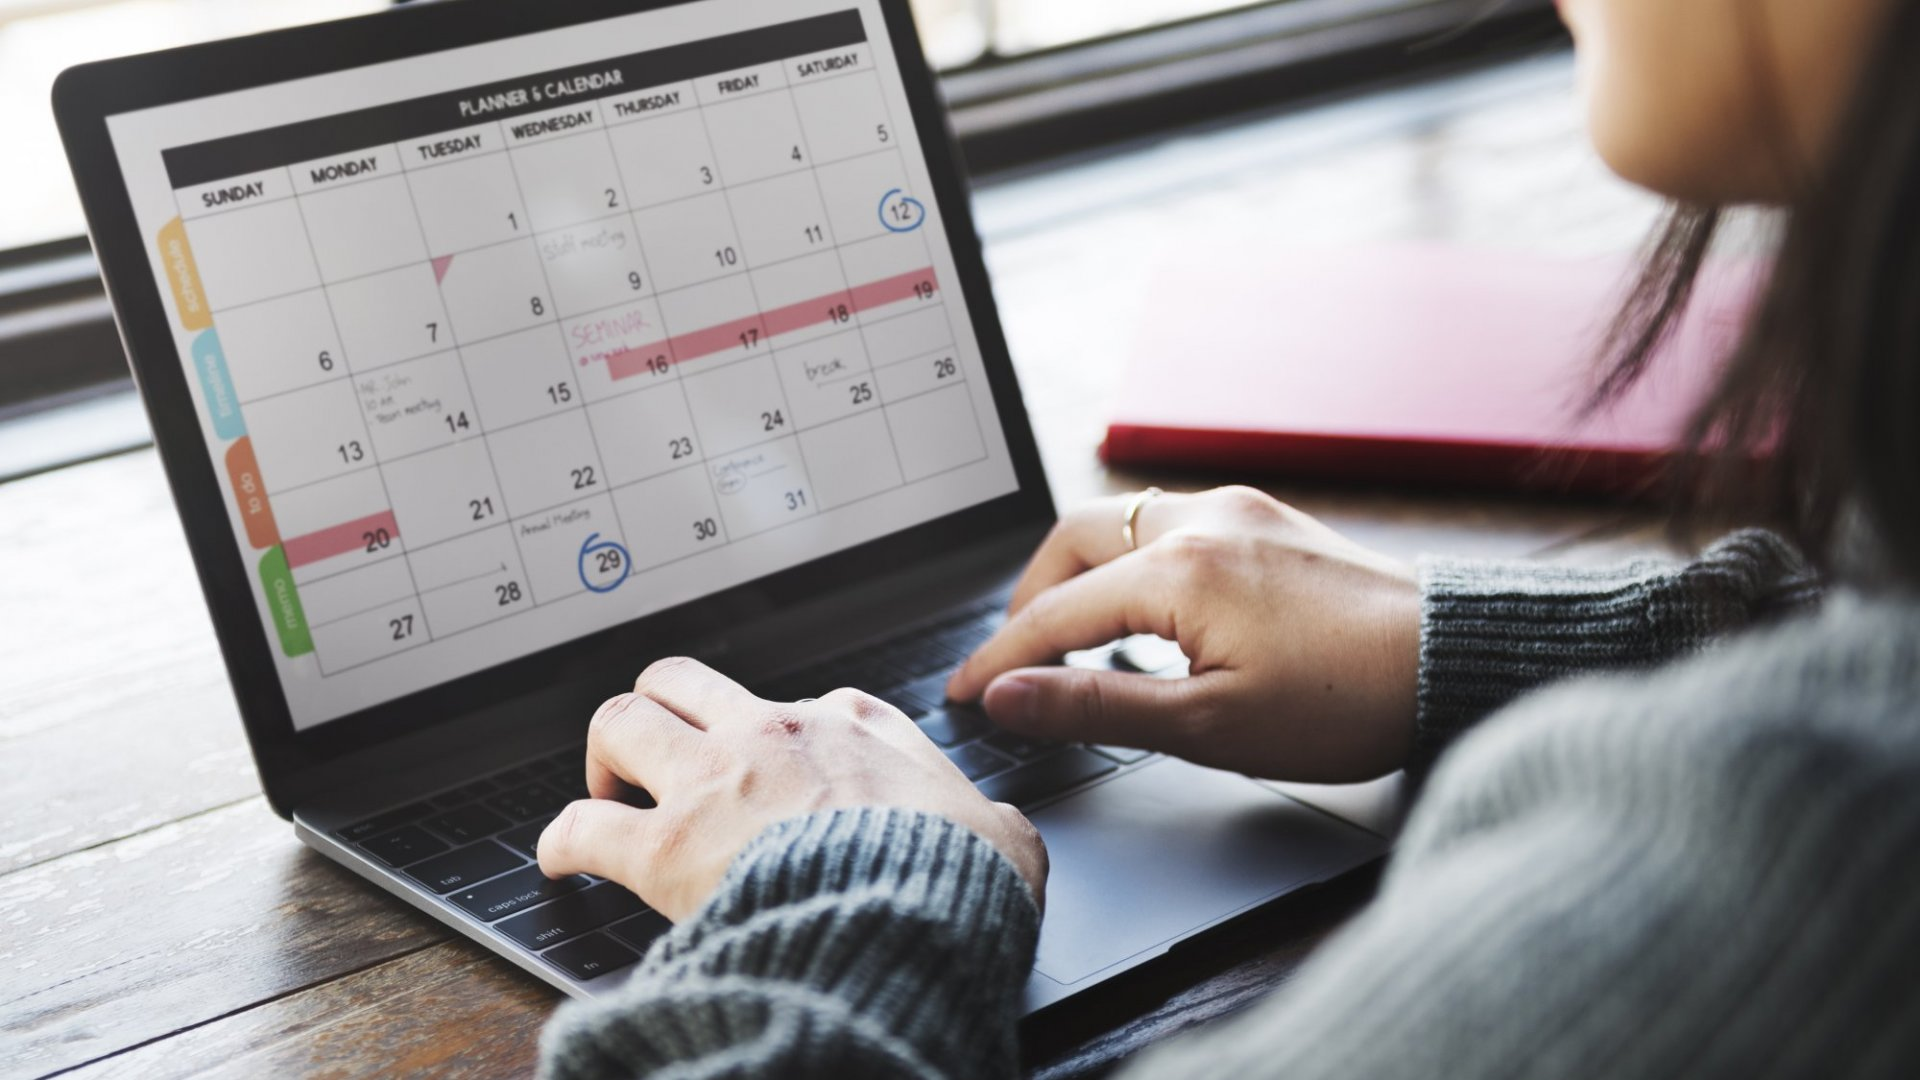 Ask Job Candidates This One Question Early to Save Time and Money